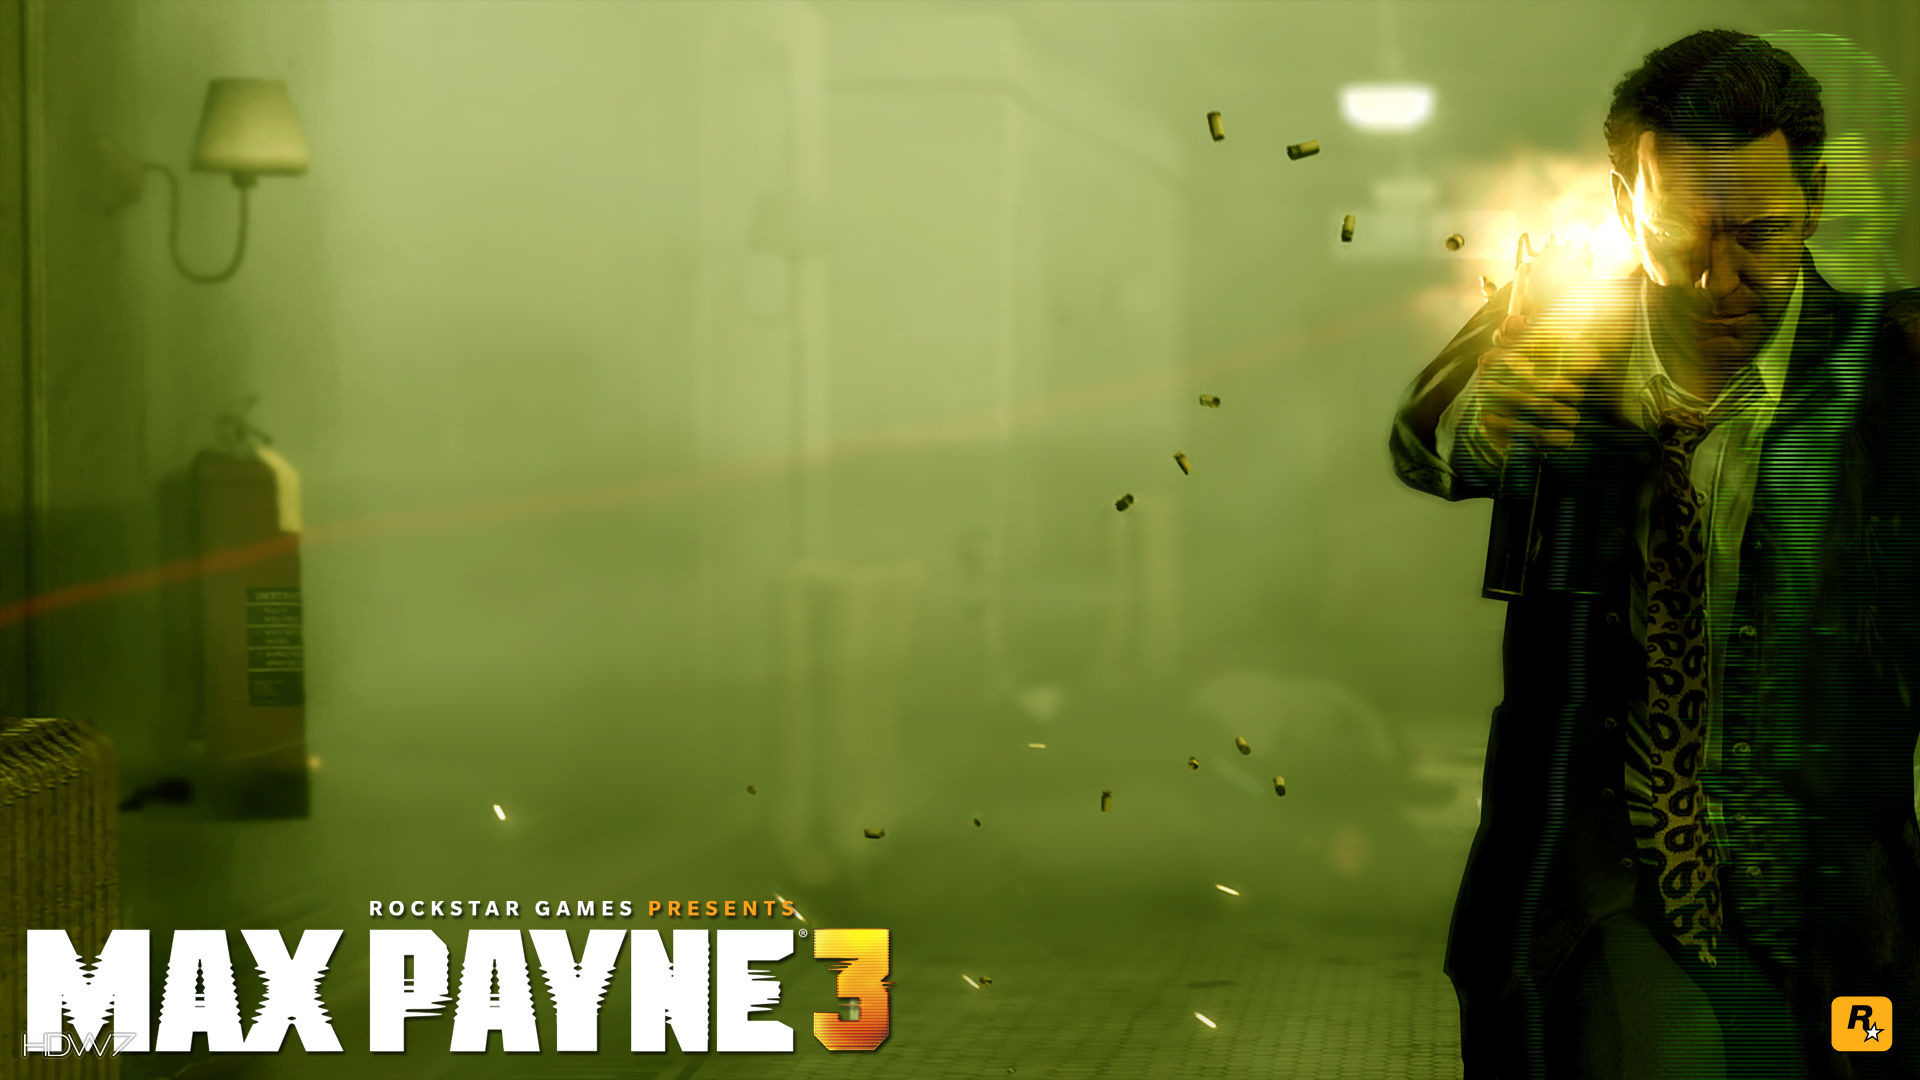 1920x1080 max payne 3 risk or die widescreen hd wallpaper